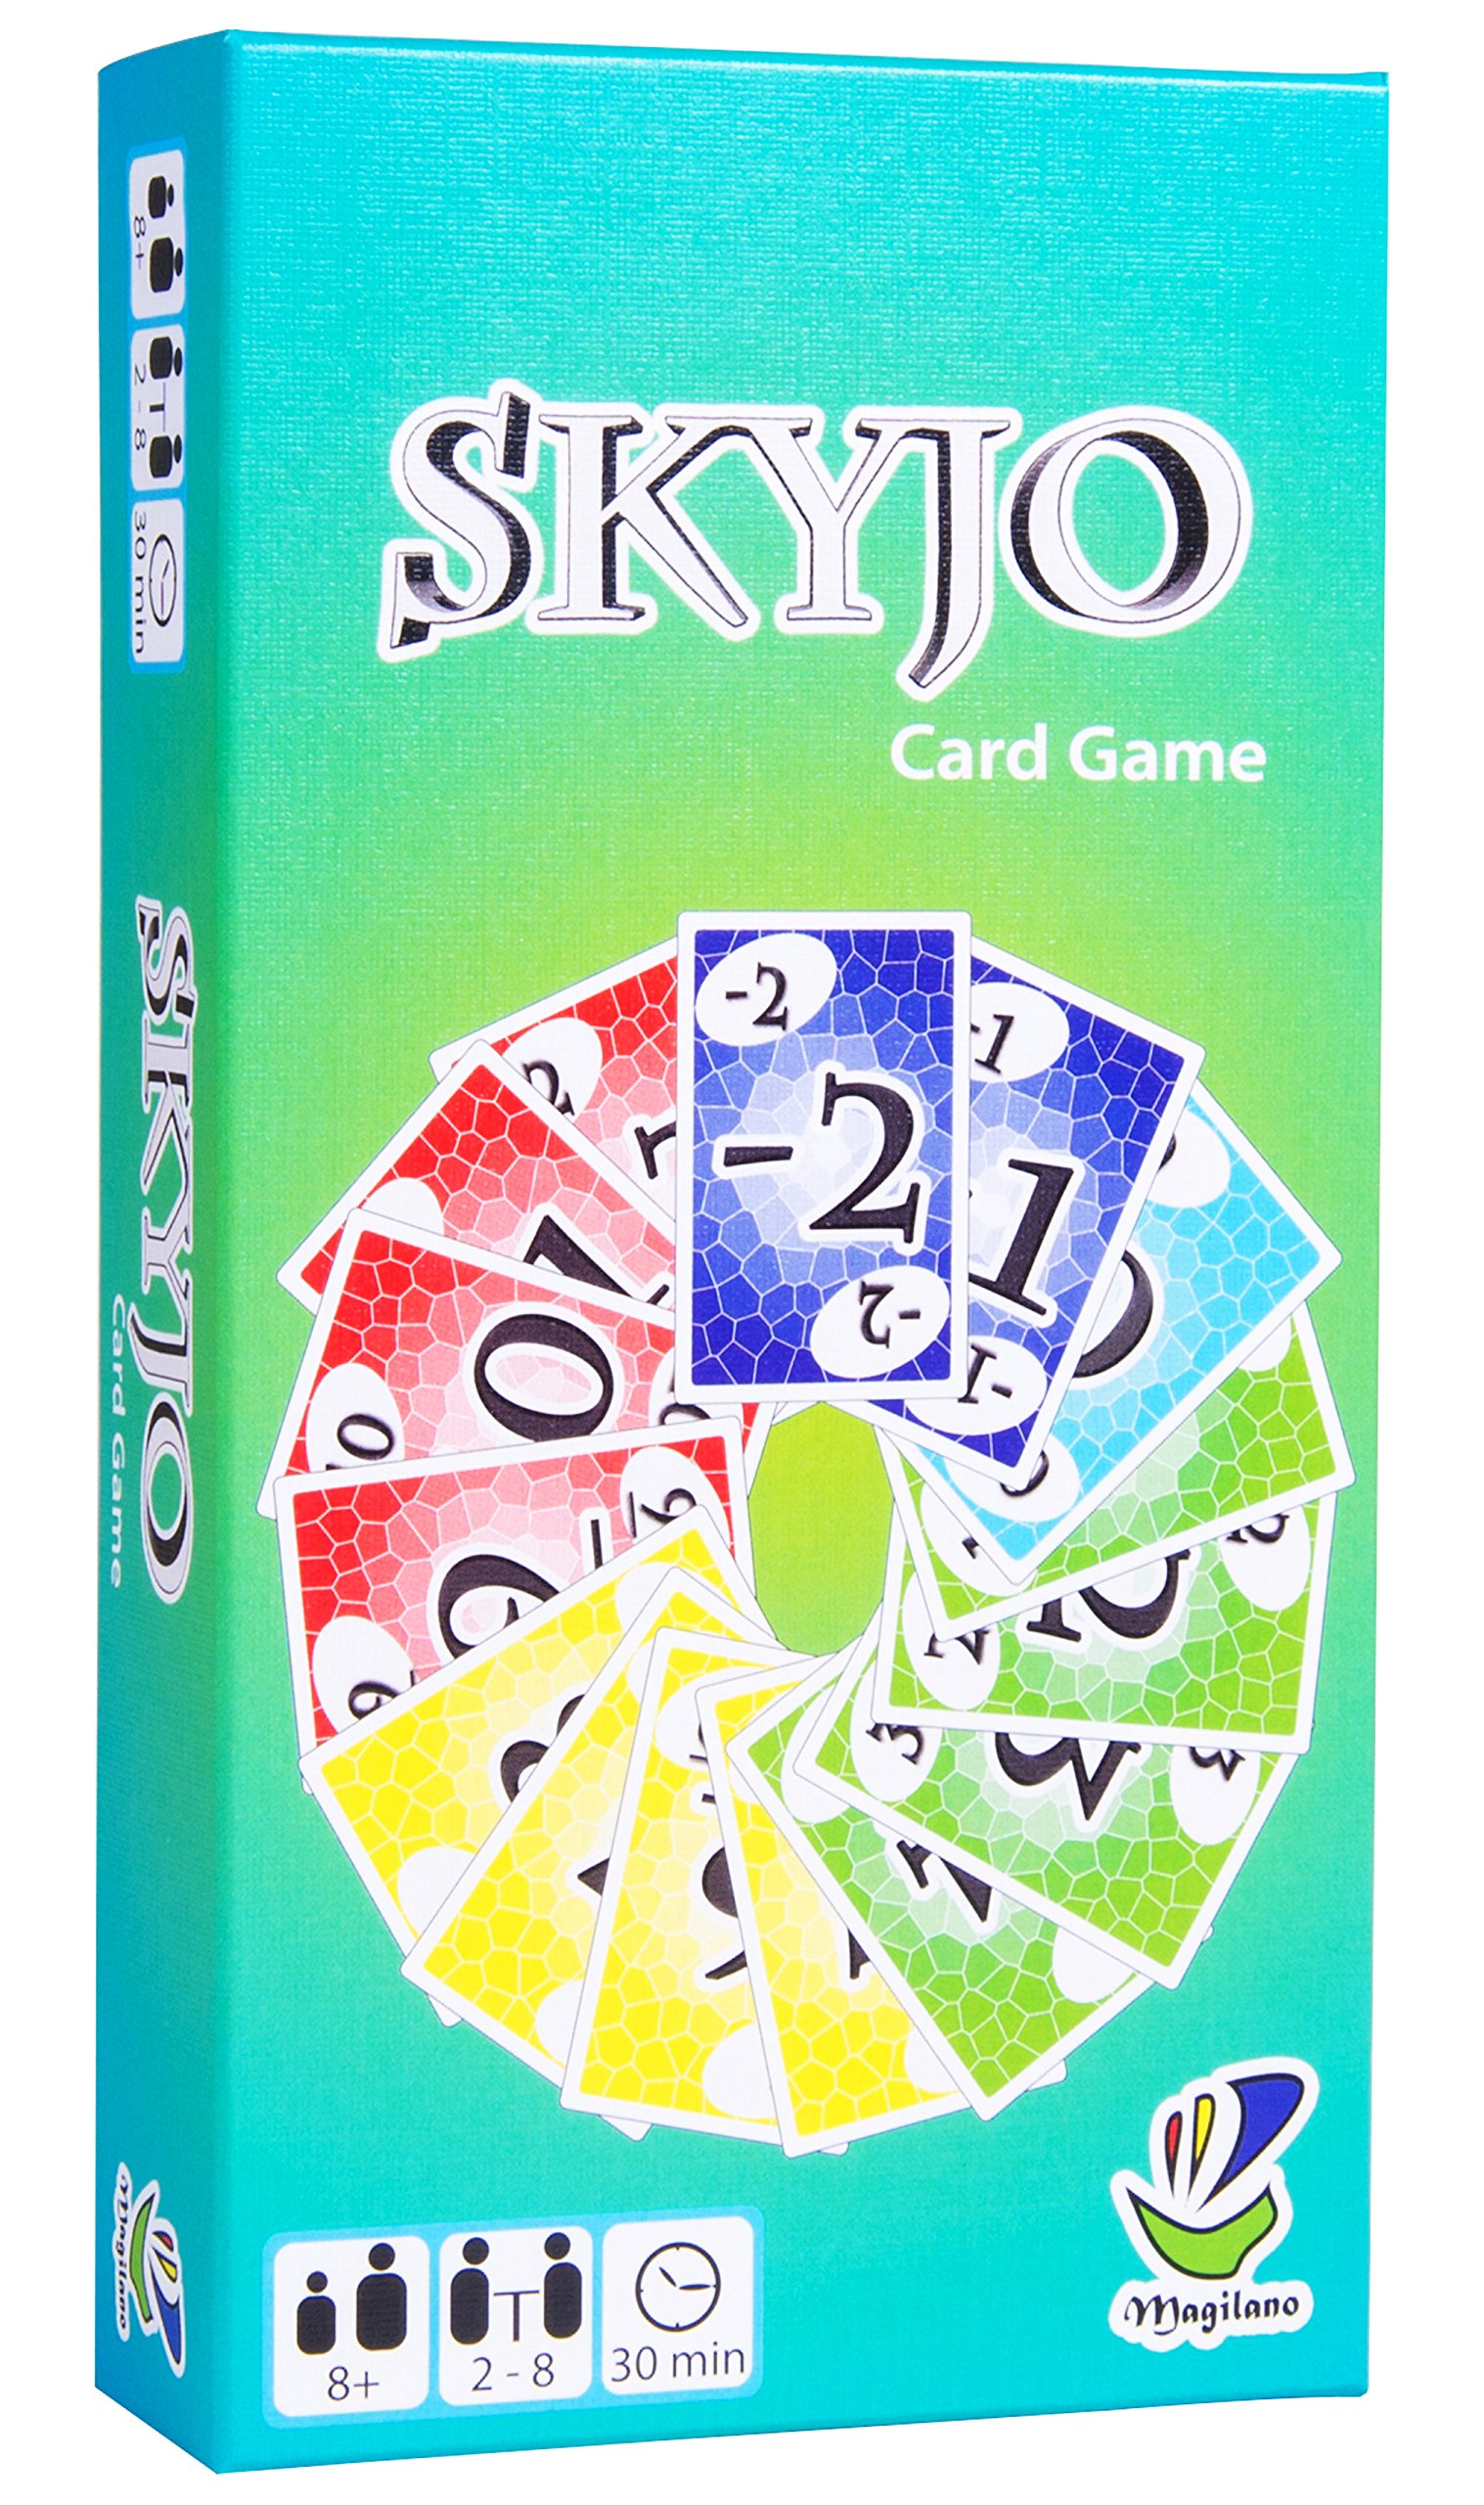 Magilano SKYJO, by The ultimate card game for kids and adults. The ideal board game for funny, entertaining and exciting playing hours with friends and family.